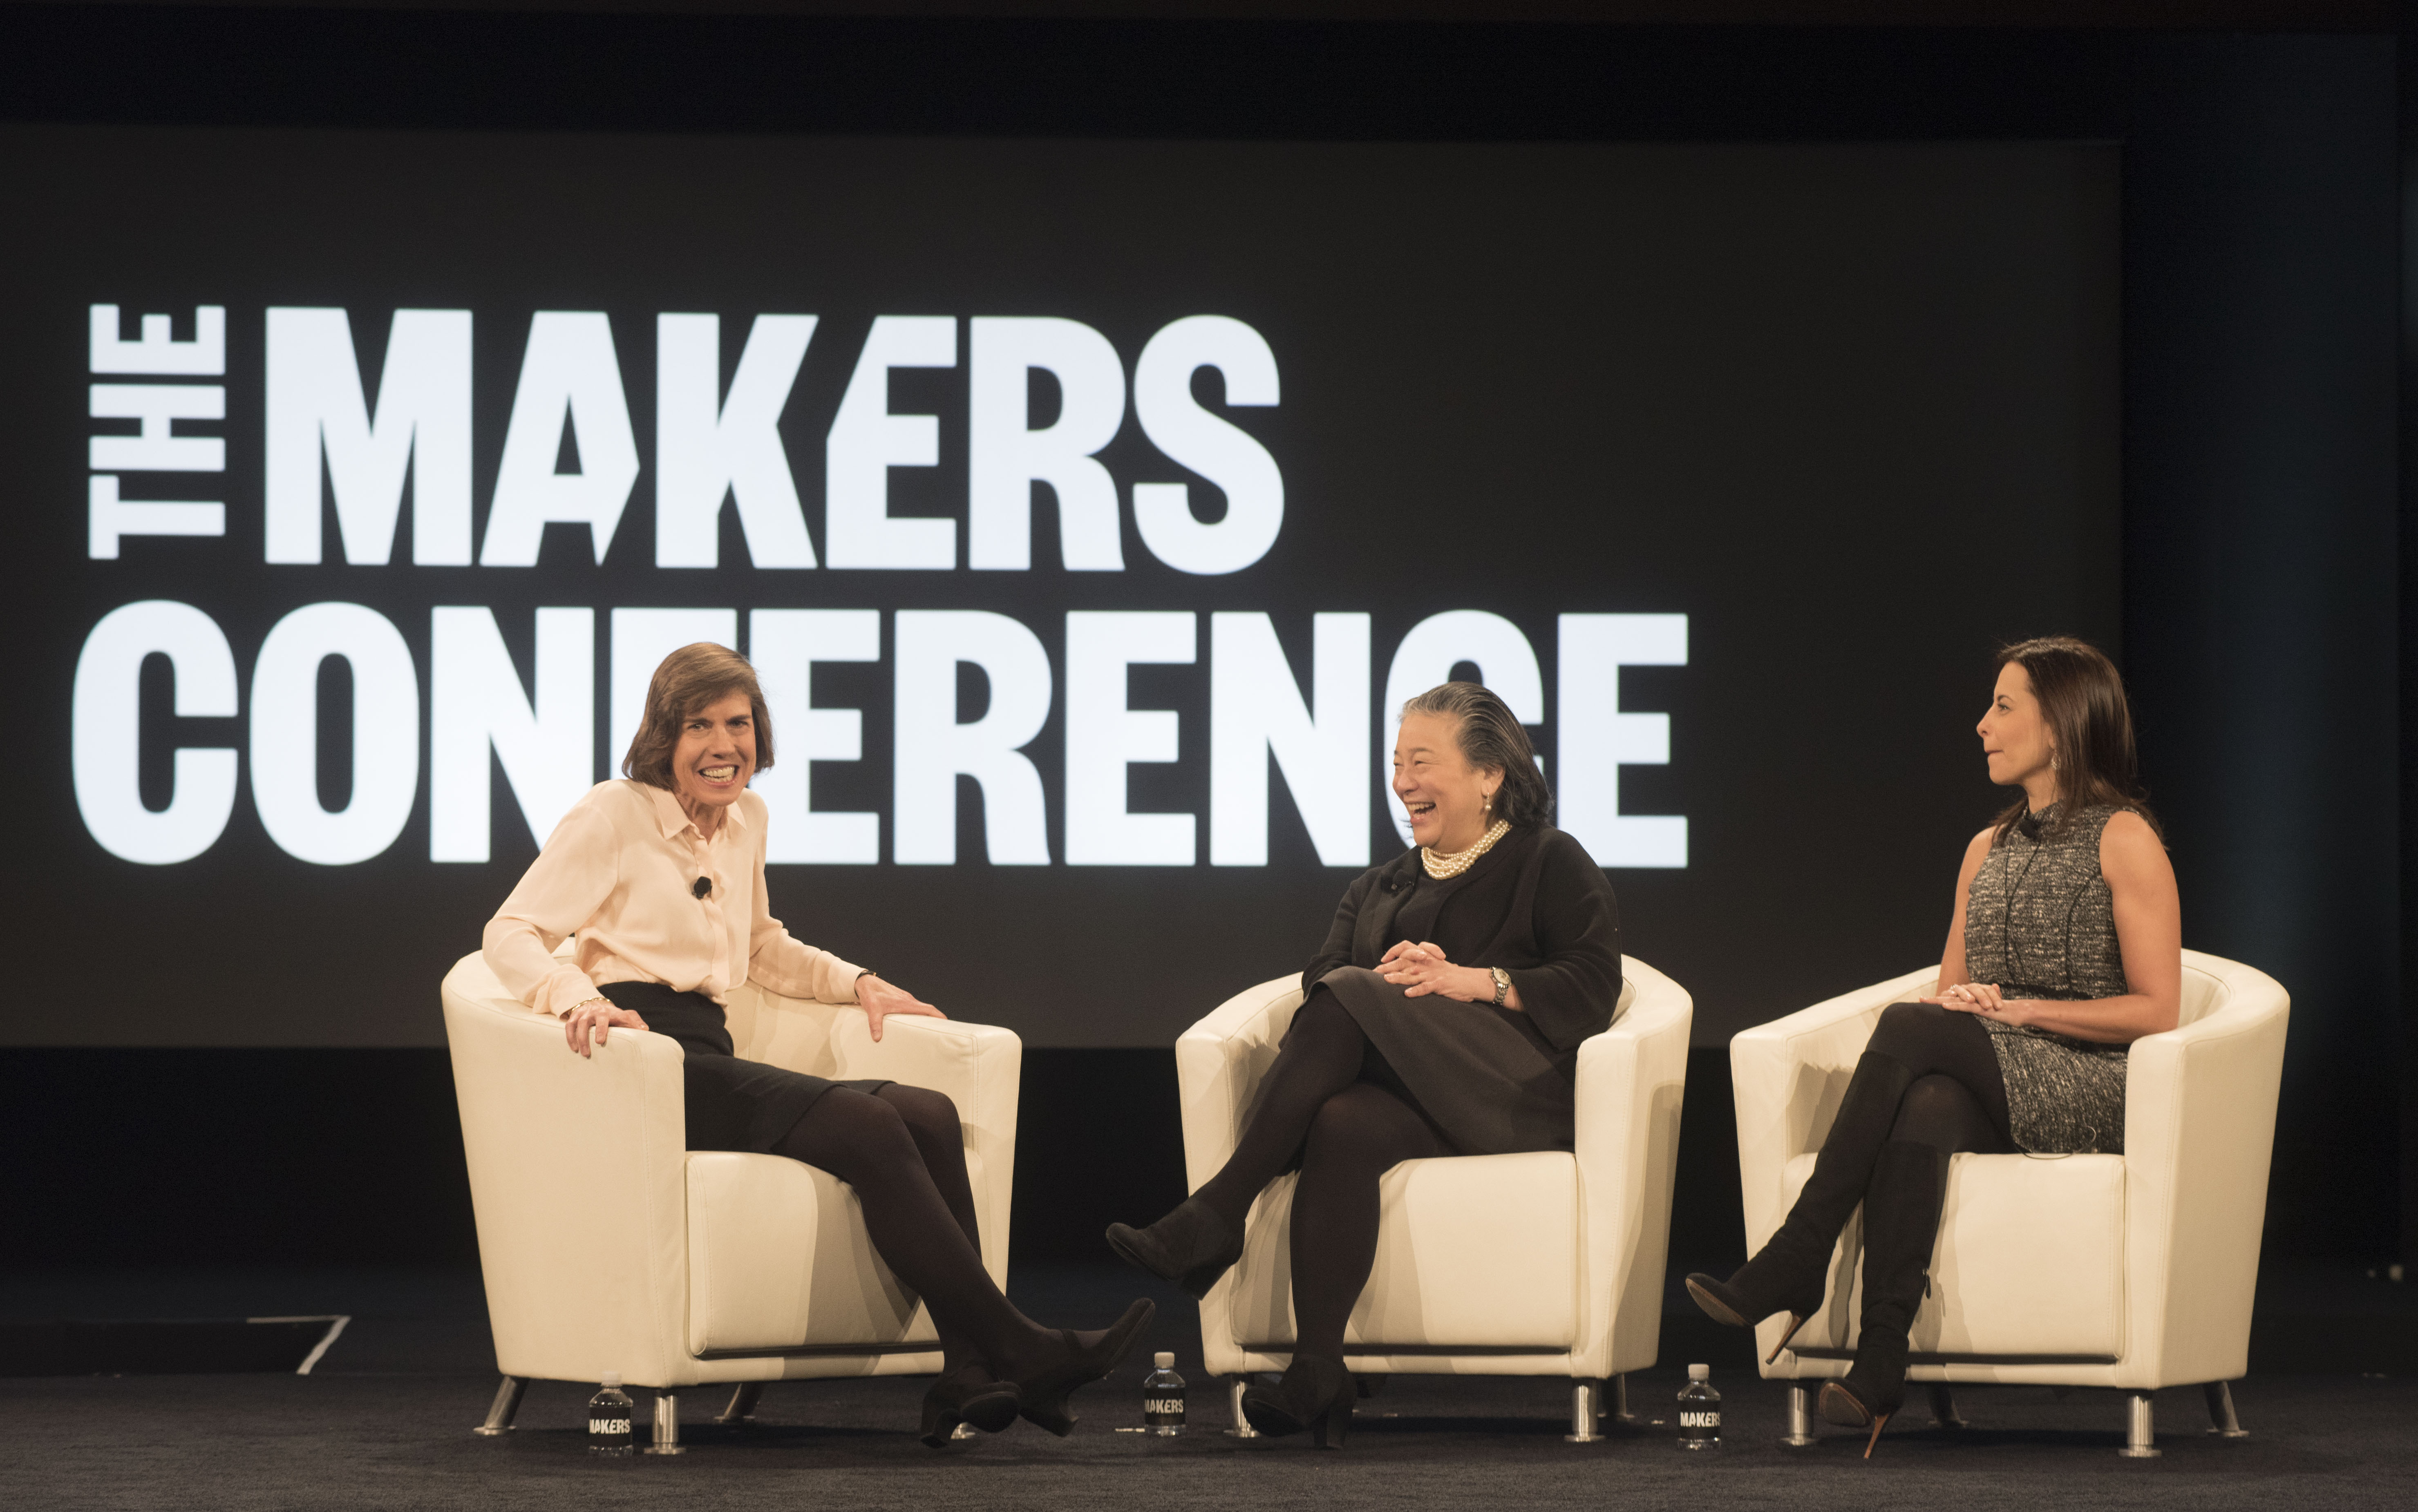 Pattie Sellers, executive director of Fortune MPW/live content talks to Tina Tchen, an assistant to President Obama and chief of staff to the Michelle Obama, and Dina Habib Powell, head of Goldman Sachs' Impact Investing business, global head of corporate engagement and president of Goldman Sachs Foundation at the MAKERS conference in Rancho Palos Verdes, CA.